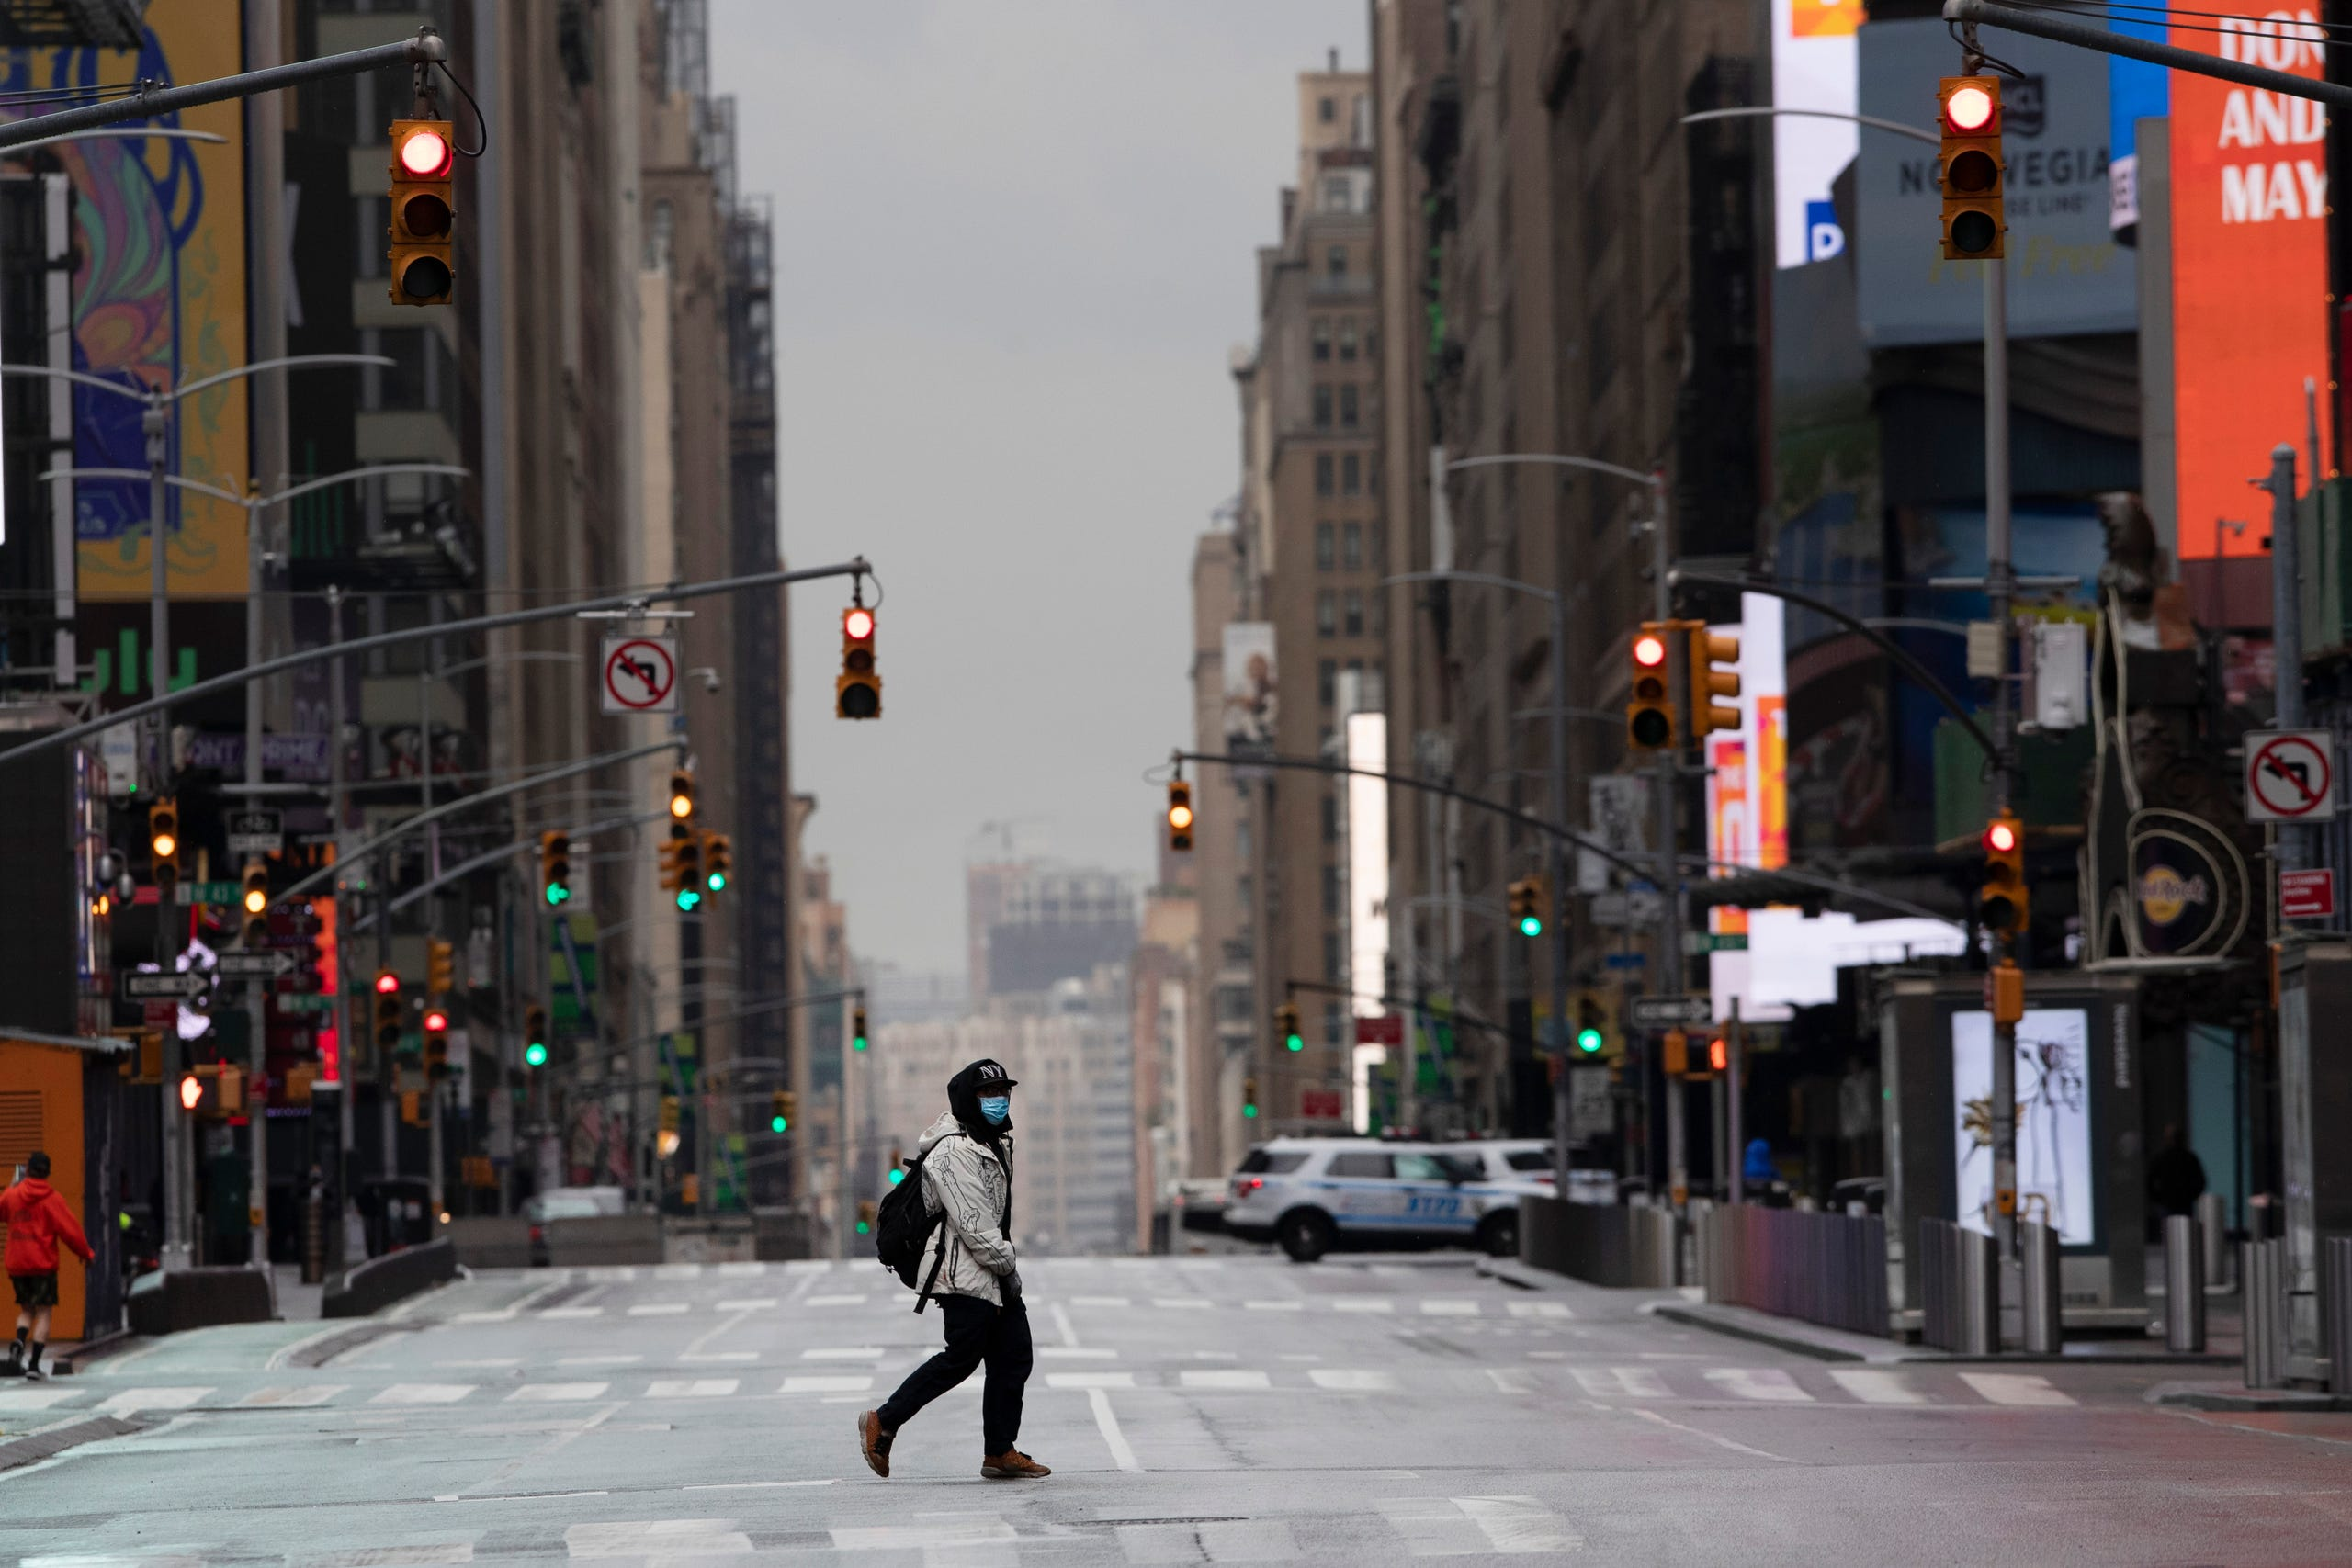 A man wearing a mask crosses the street in a quiet Times Square, Thursday, April 9, 2020, during the coronavirus epidemic in New York City.